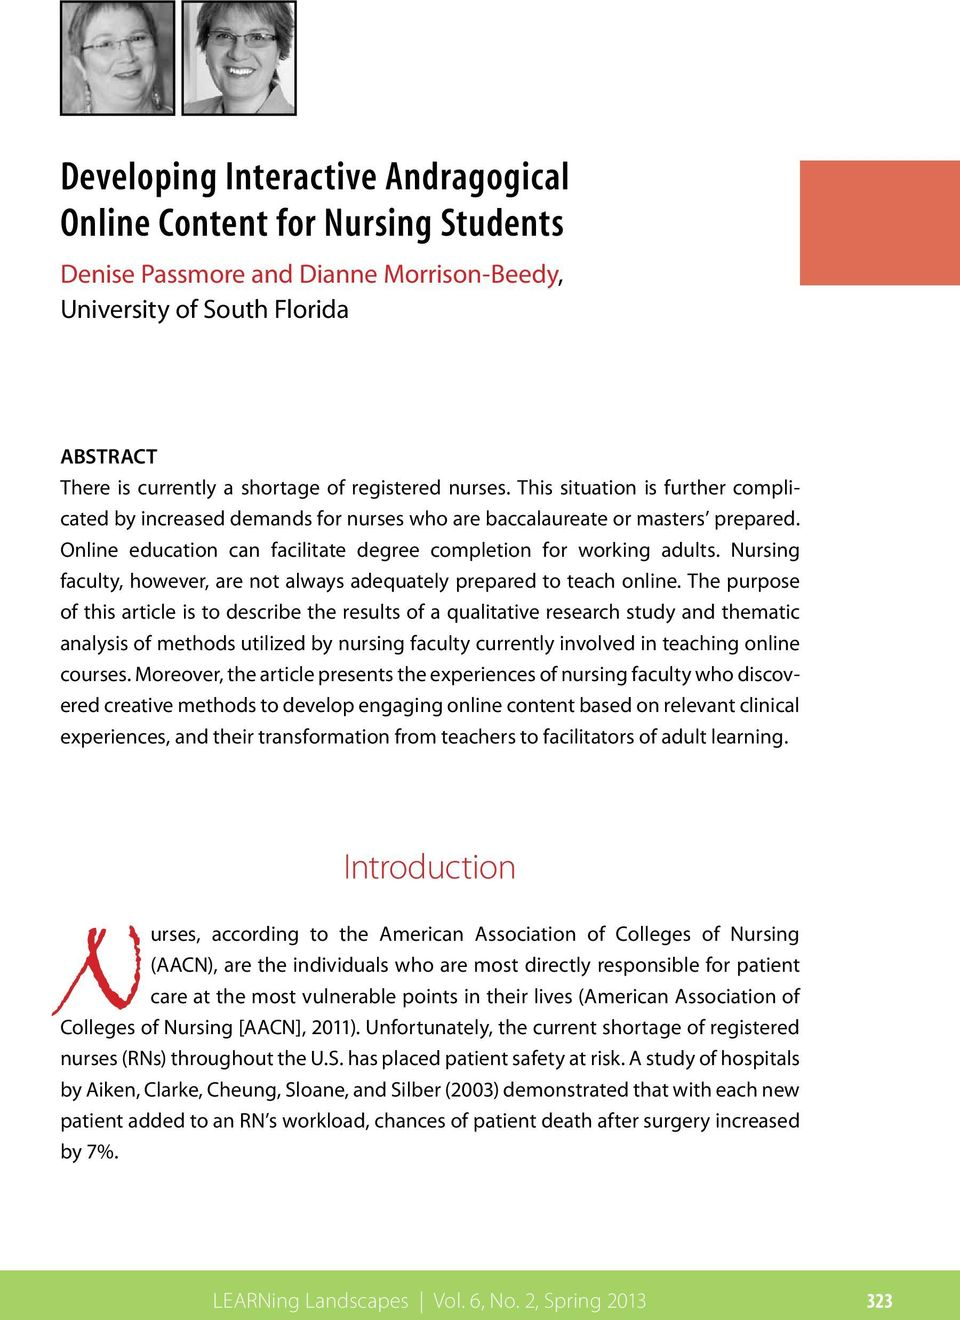 Nursing faculty, however, are not always adequately prepared to teach online.